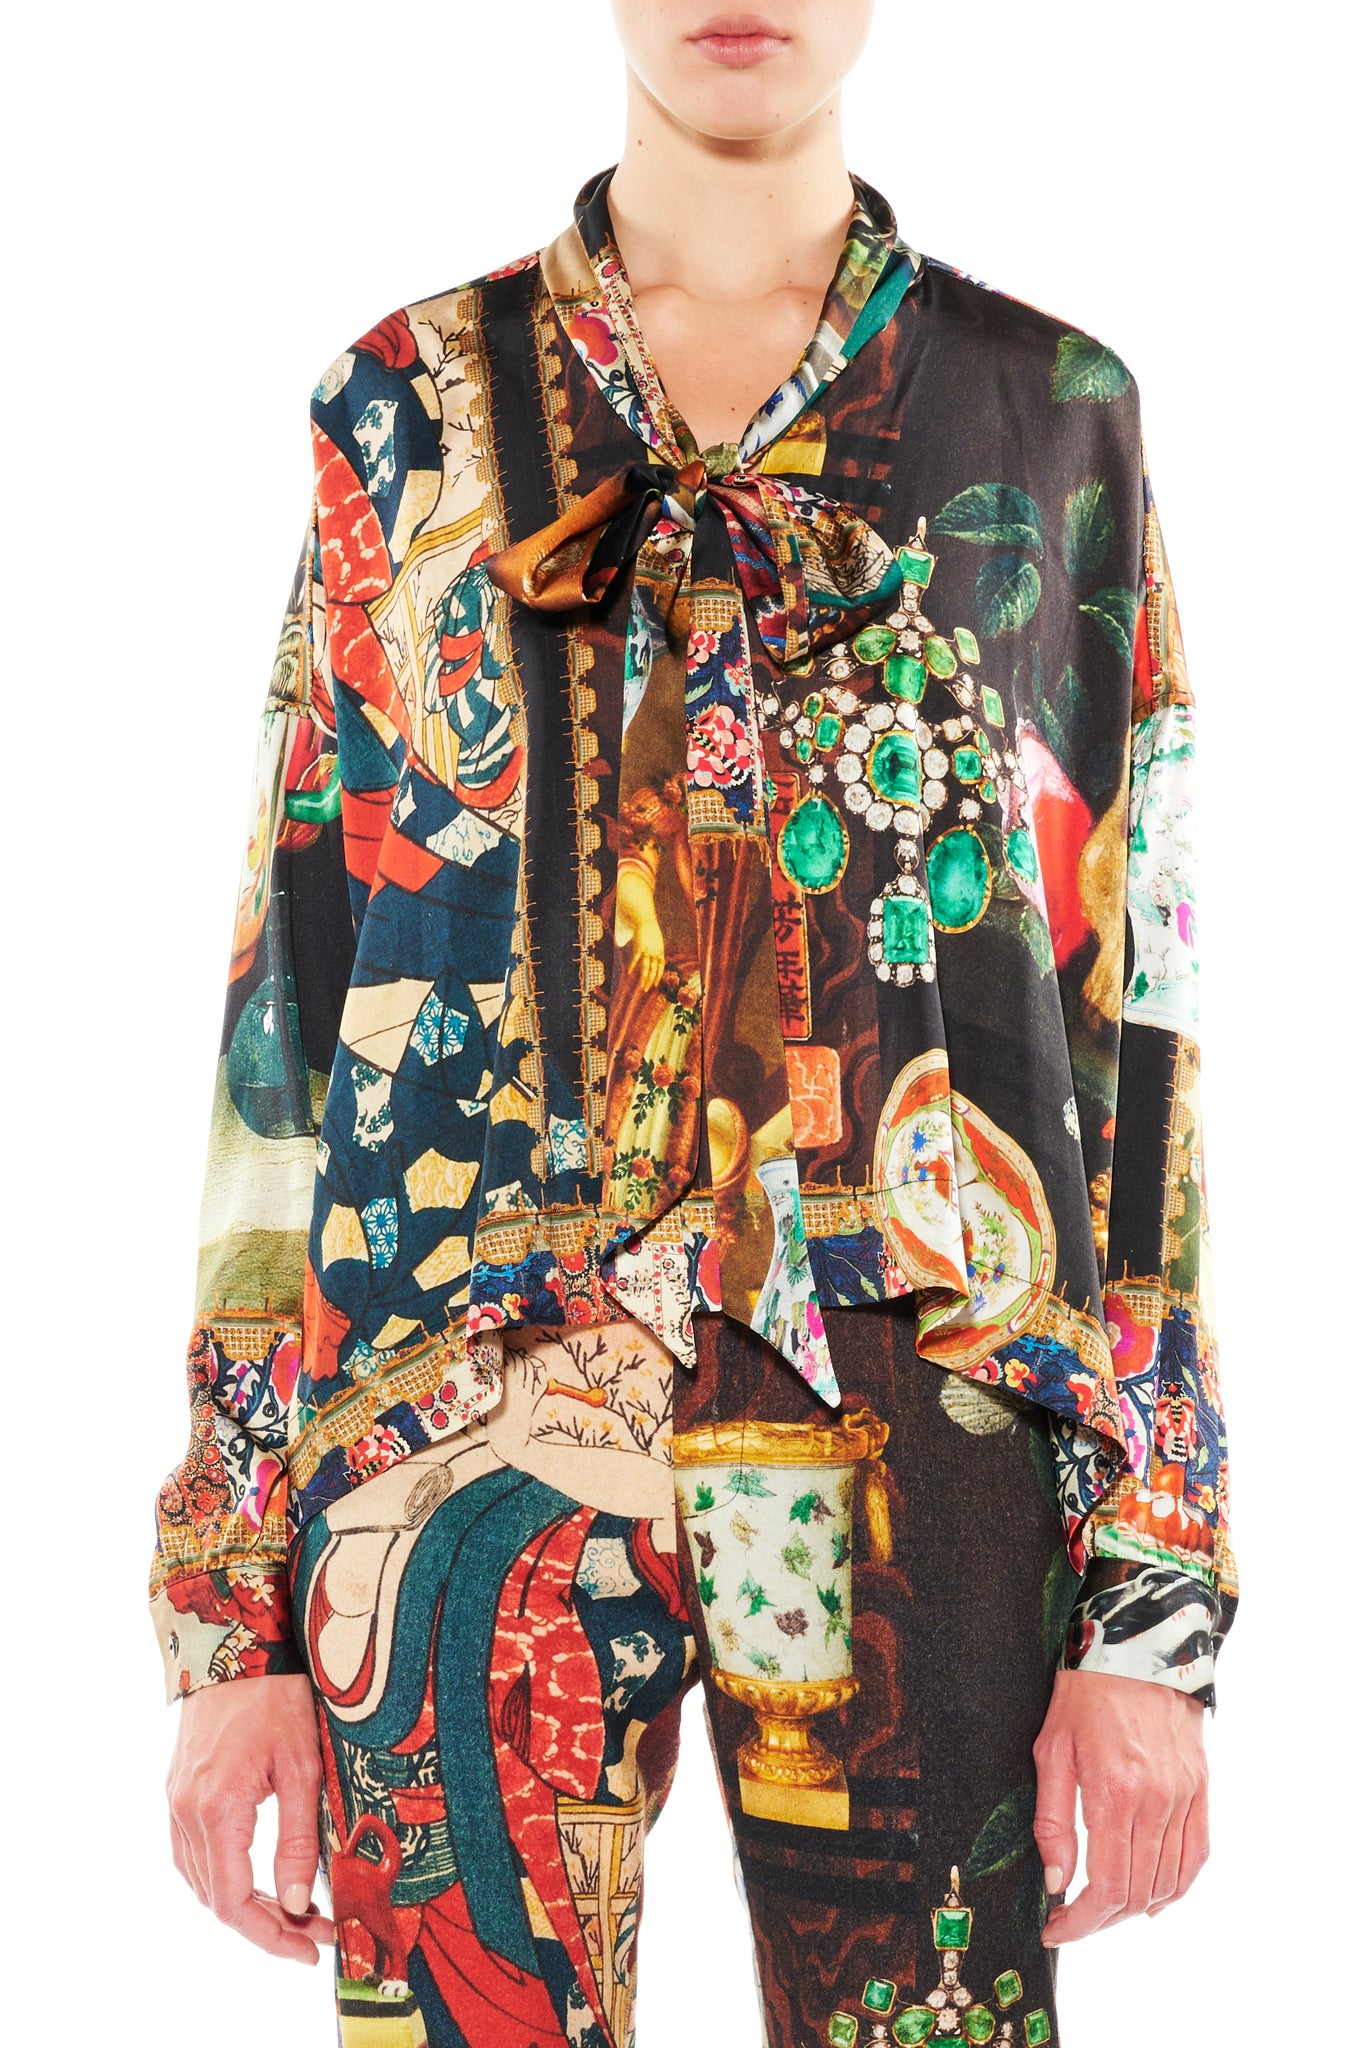 'MEMENTO MORI' TIE BLOUSE - Web Exclusives - Libertine